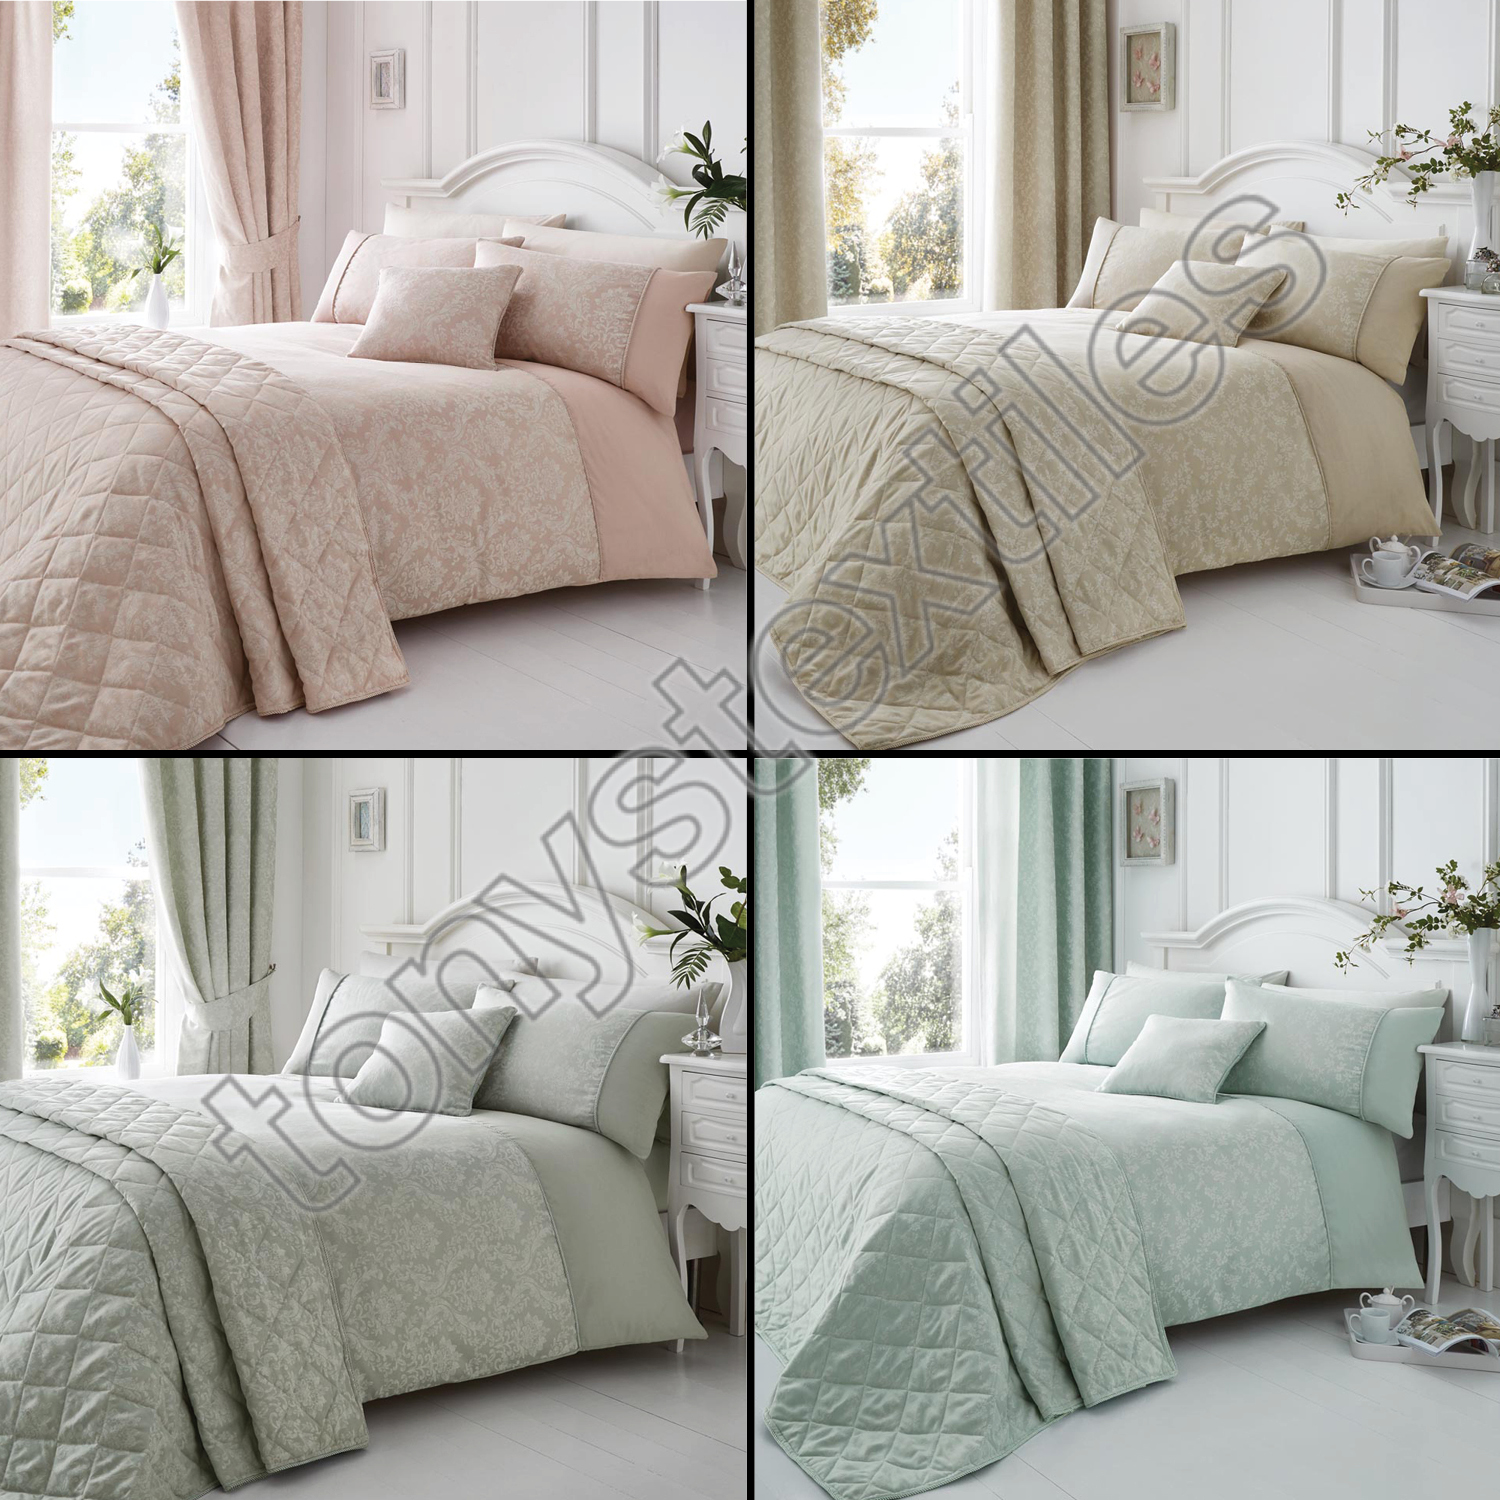 Elegant Floral Jacquard Cotton Rich Cream Pink Silver Bedspread Bed Bedcover Sentinel Throw Cover